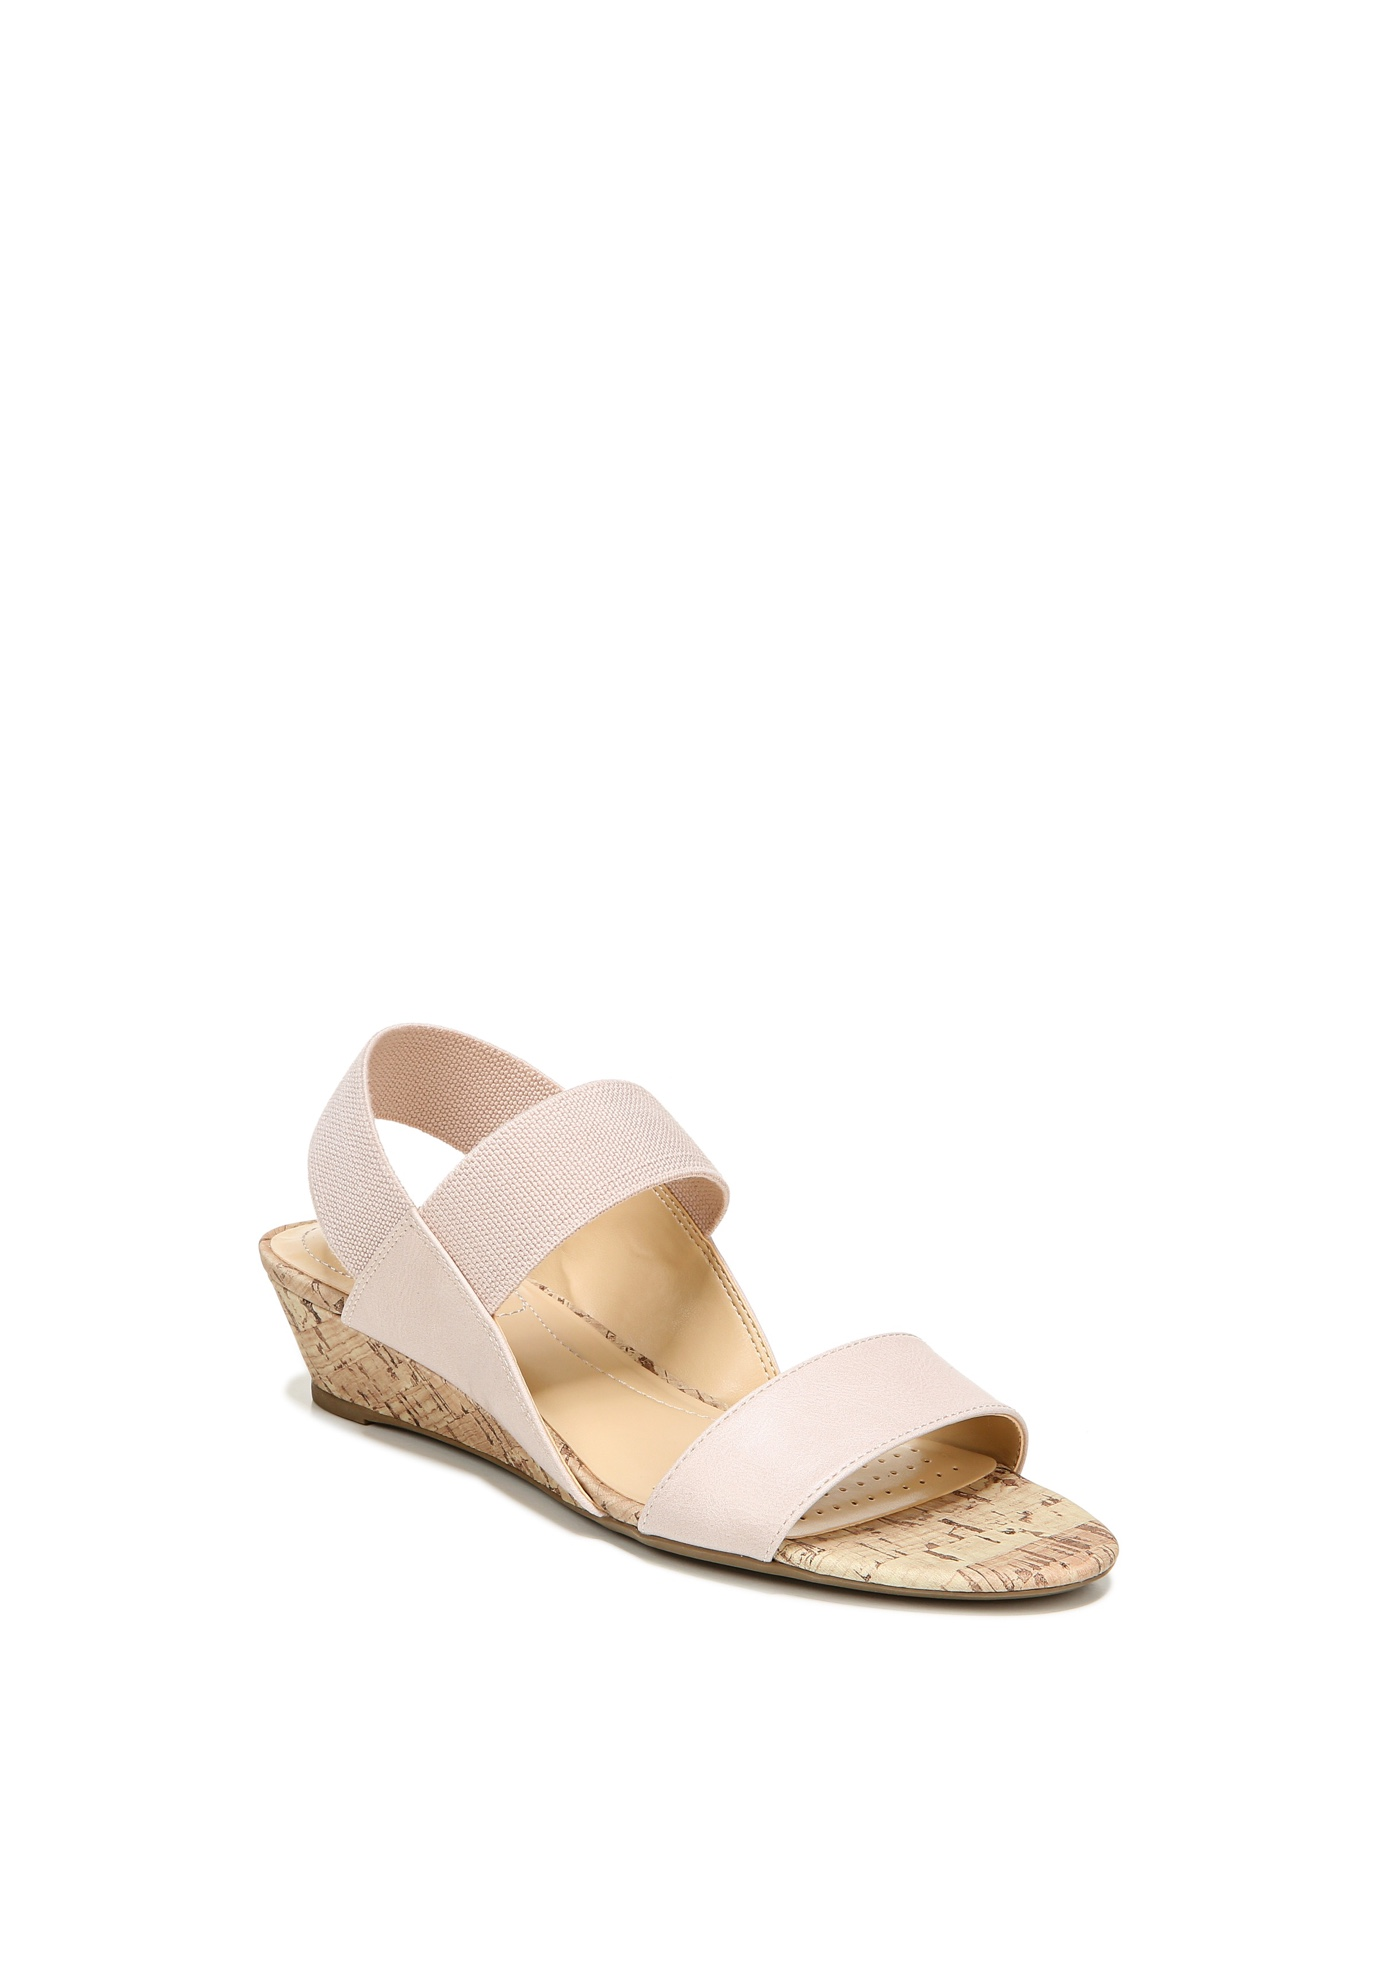 Yoko Wedge Sandal by LifeStride,